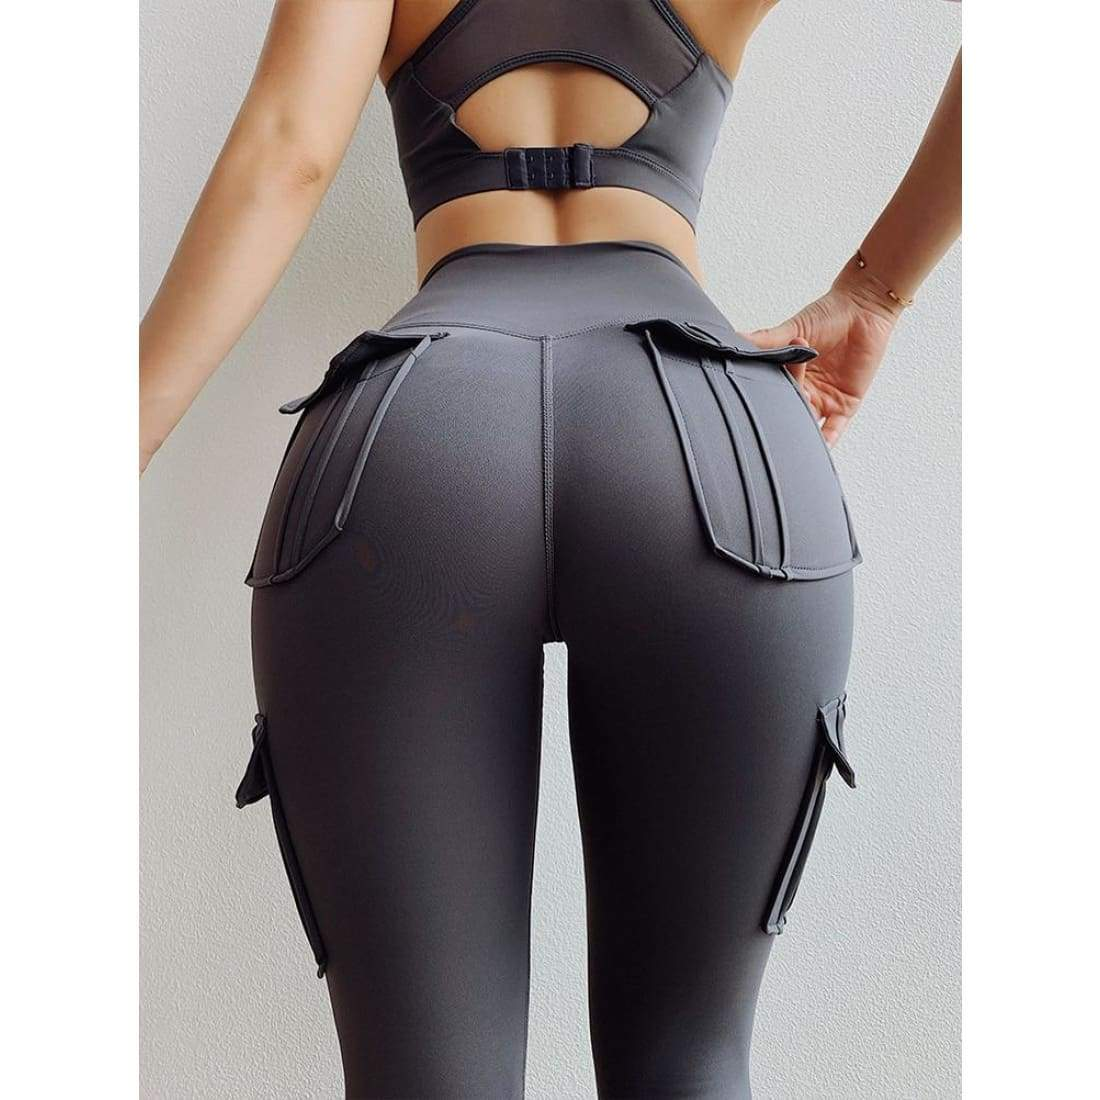 Sculpt cargo leggings - L / Gray - Pants